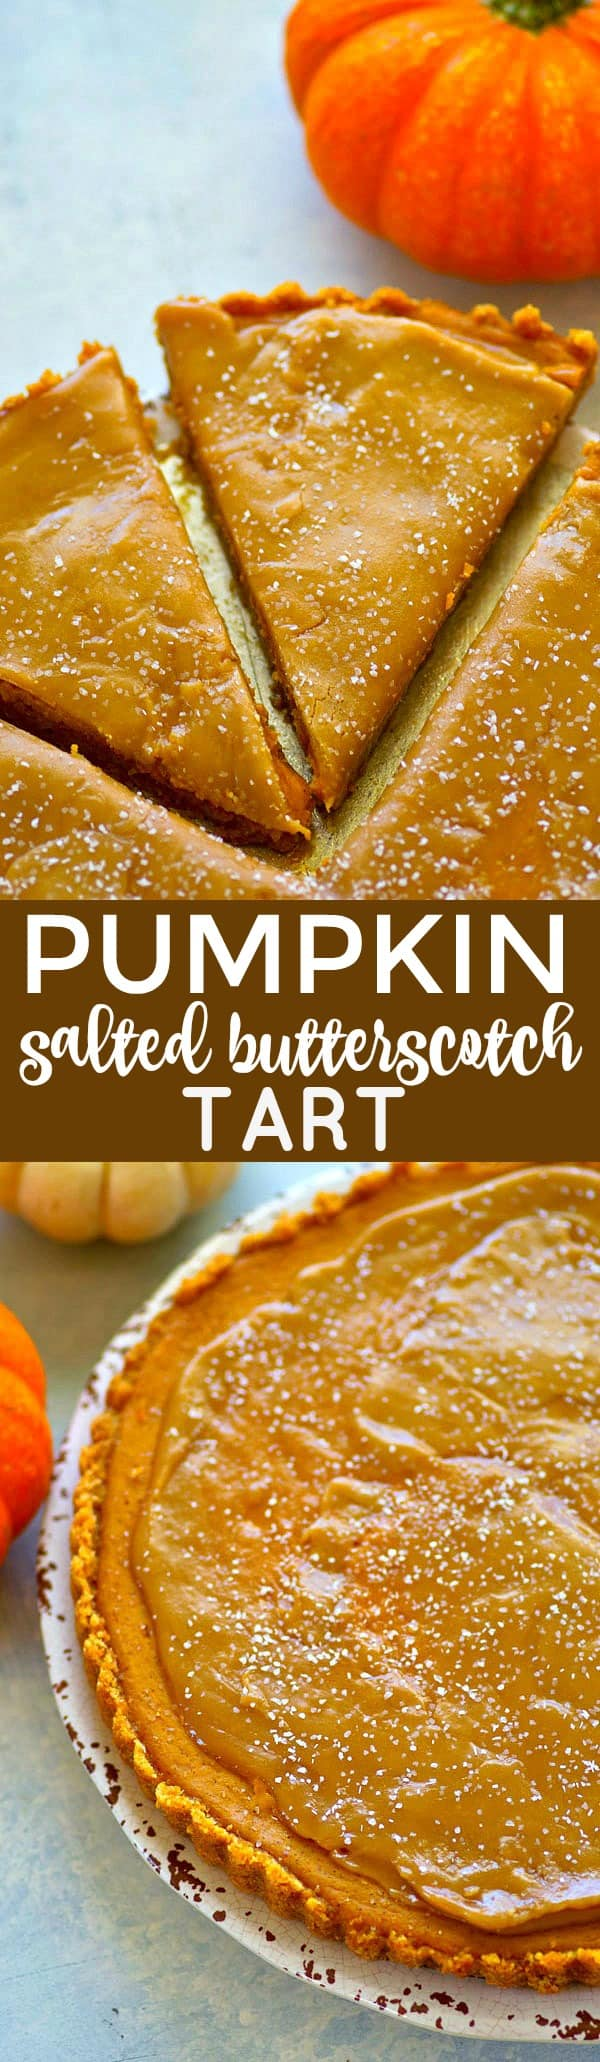 A silky pumpkin filling sits on top of a buttery vanilla wafer crust and a homemade salted butterscotch sauce covers every inch of this INCREDIBLE pumpkin salted butterscotch tart!